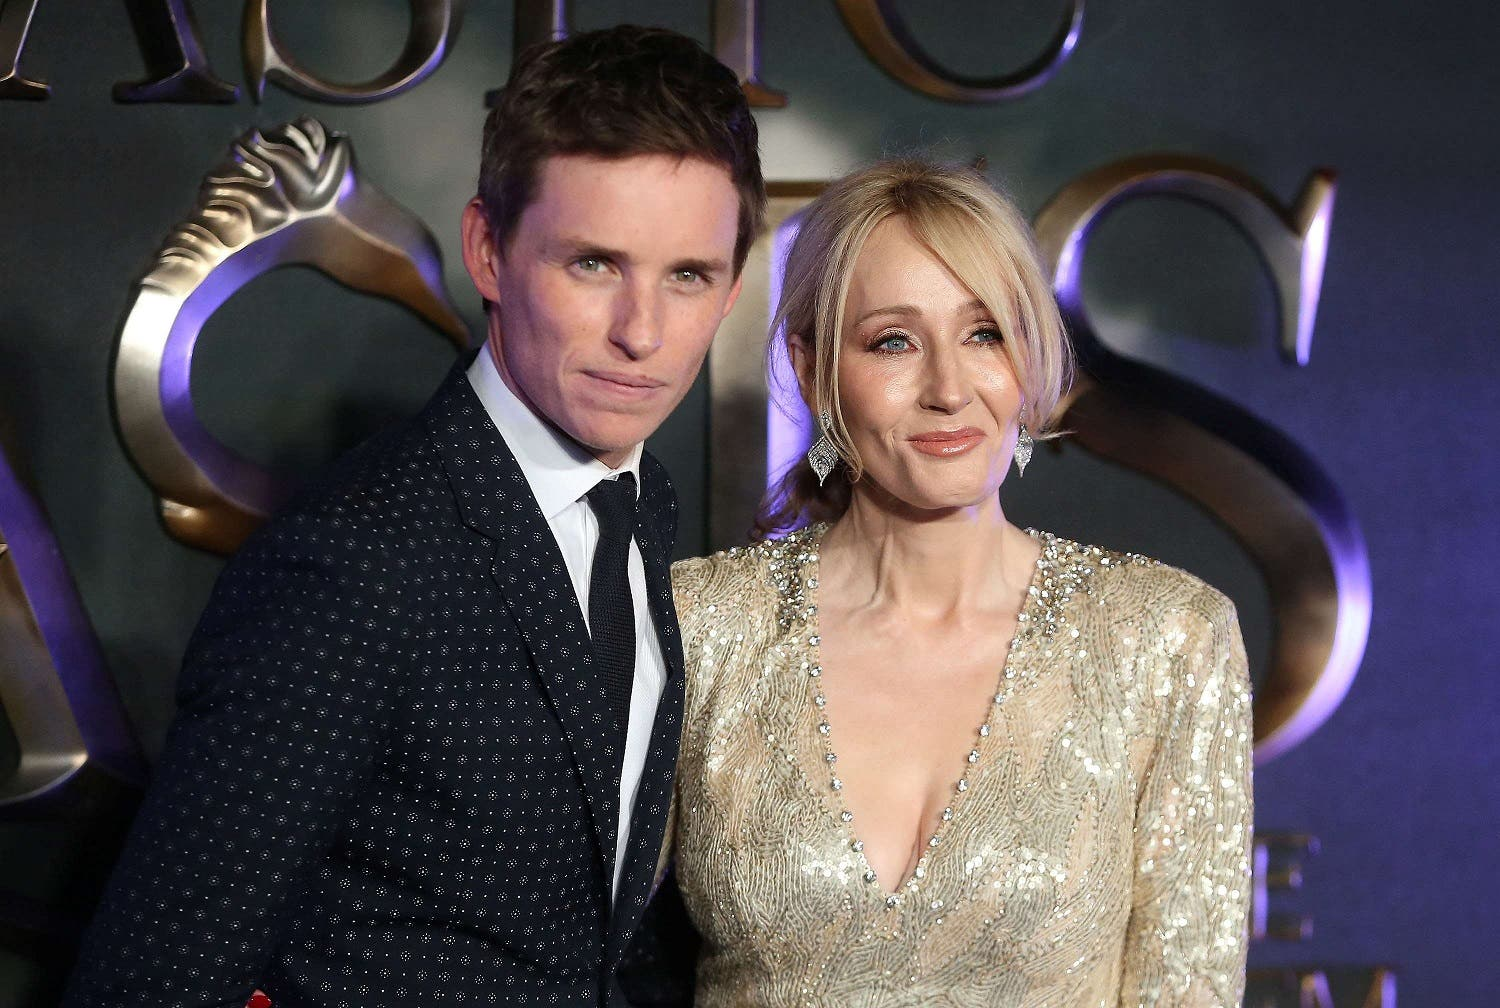 Actor Eddie Redmayne (L) poses with writer J.K. Rowling as they arrive for the European premiere of the film 'Fantastic Beasts and Where to Find Them' in London, Britain November 15, 2016. (Reuters)